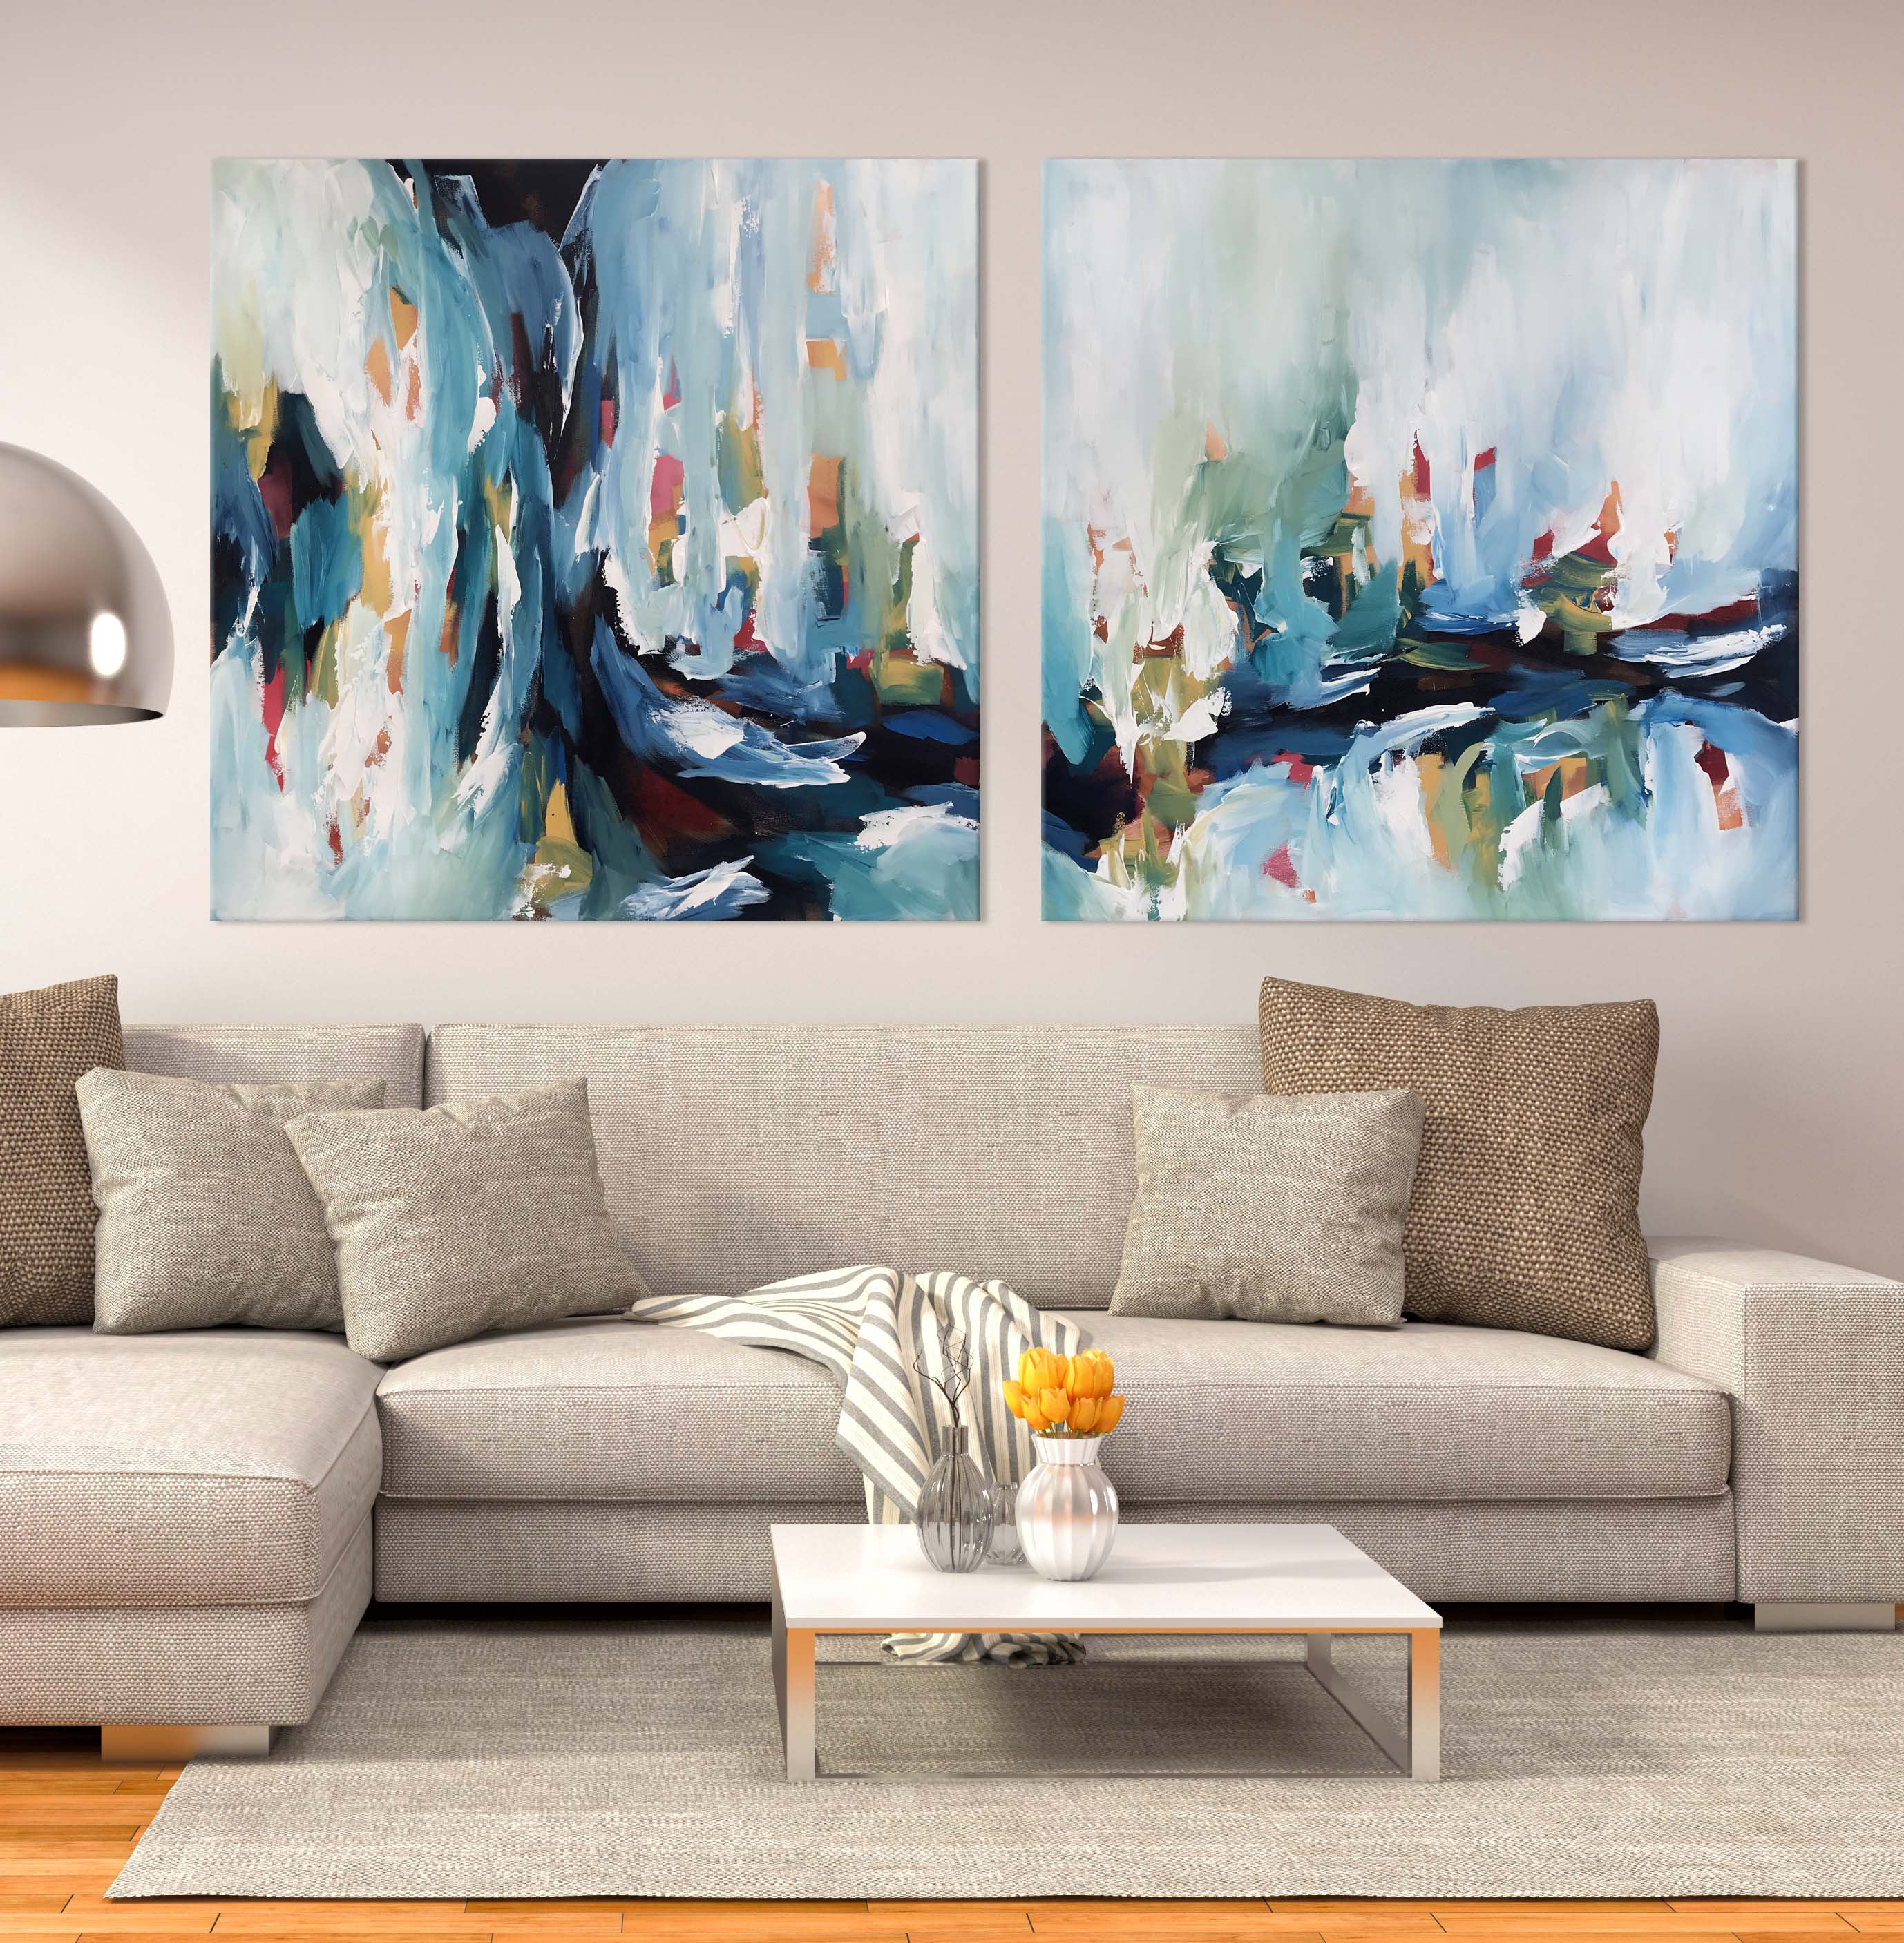 Daybreak 2 - Diptych 204x102 cm - Original Painting - Abstract Art By Omar Obaid - OmarObaid.com